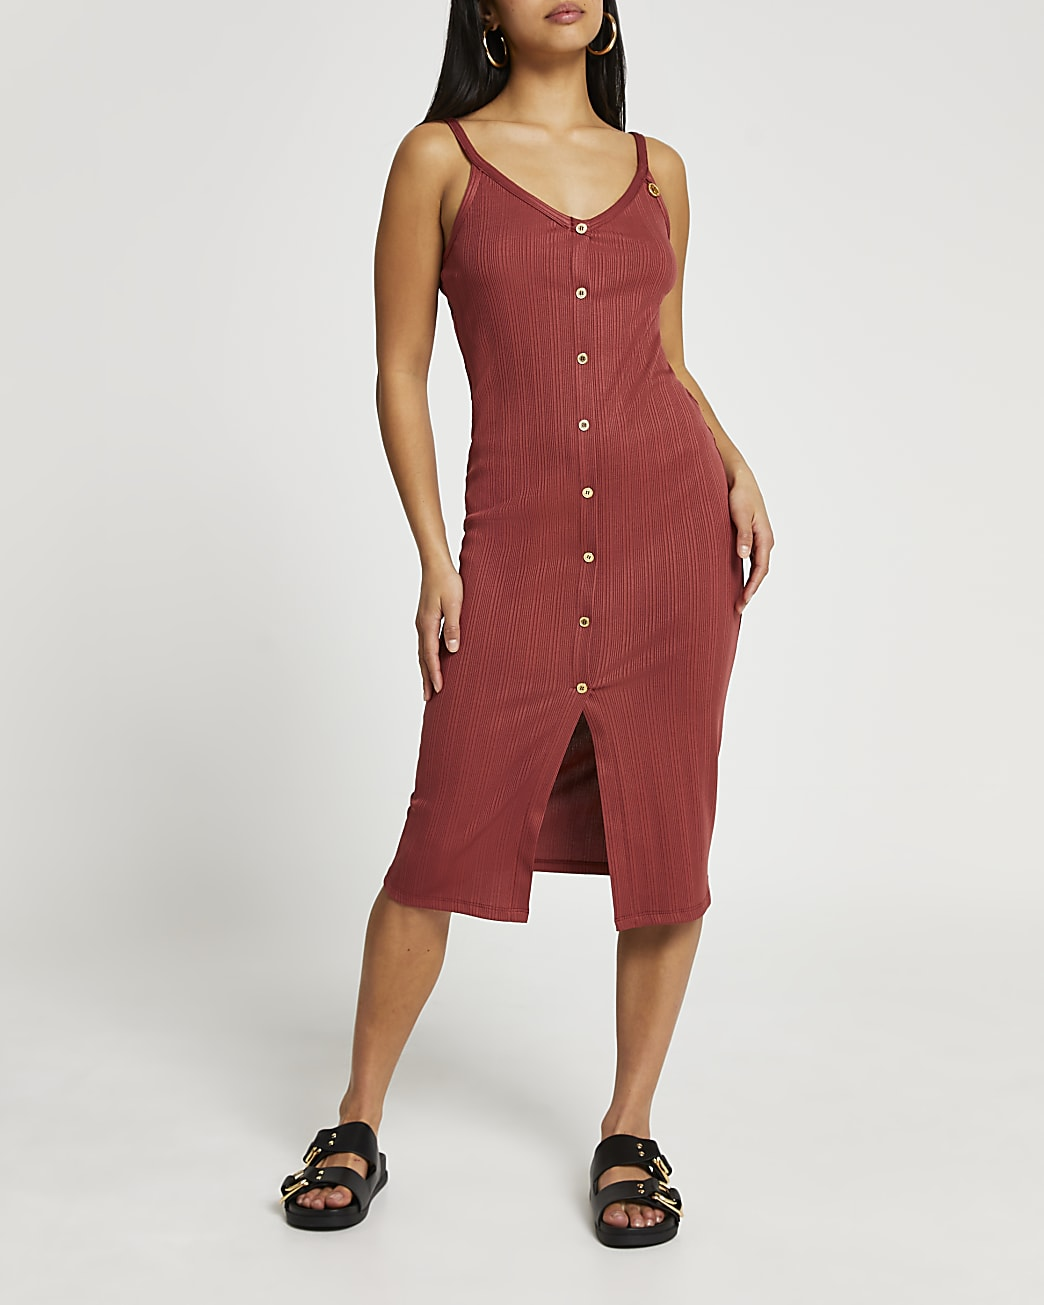 Petite rust ribbed button front midi dress